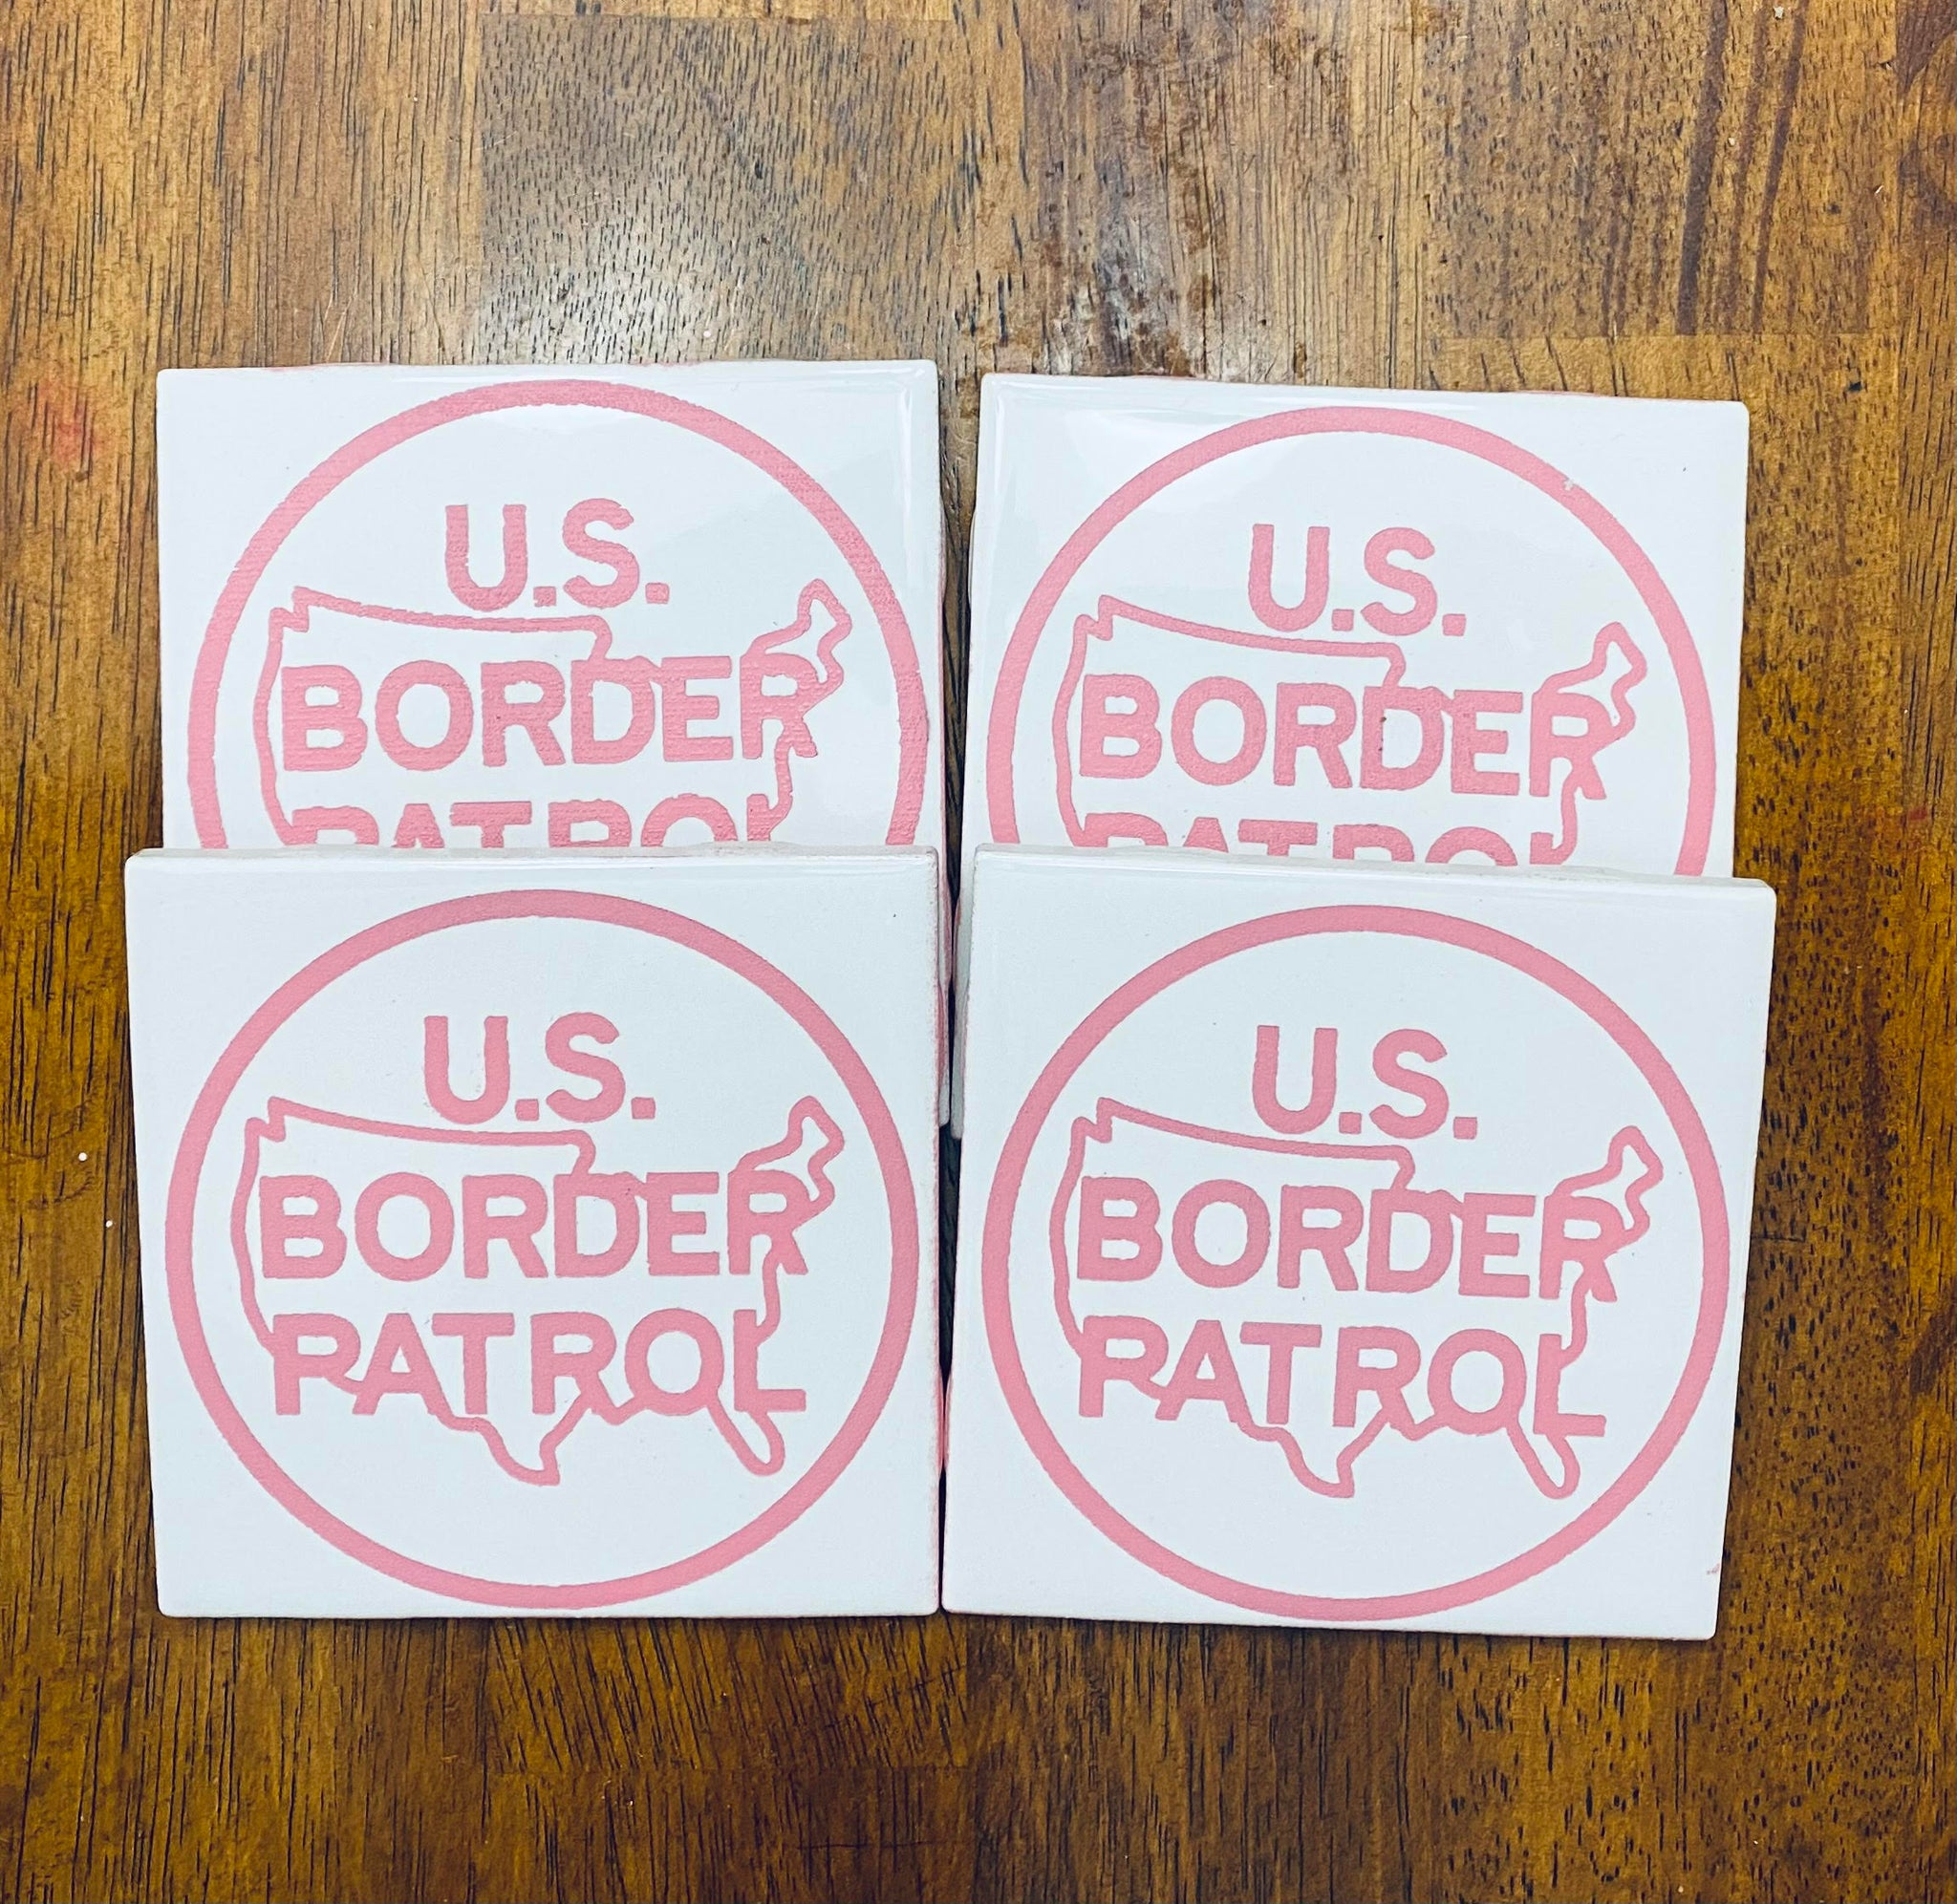 4 Piece Coaster Set (Border Patrol)